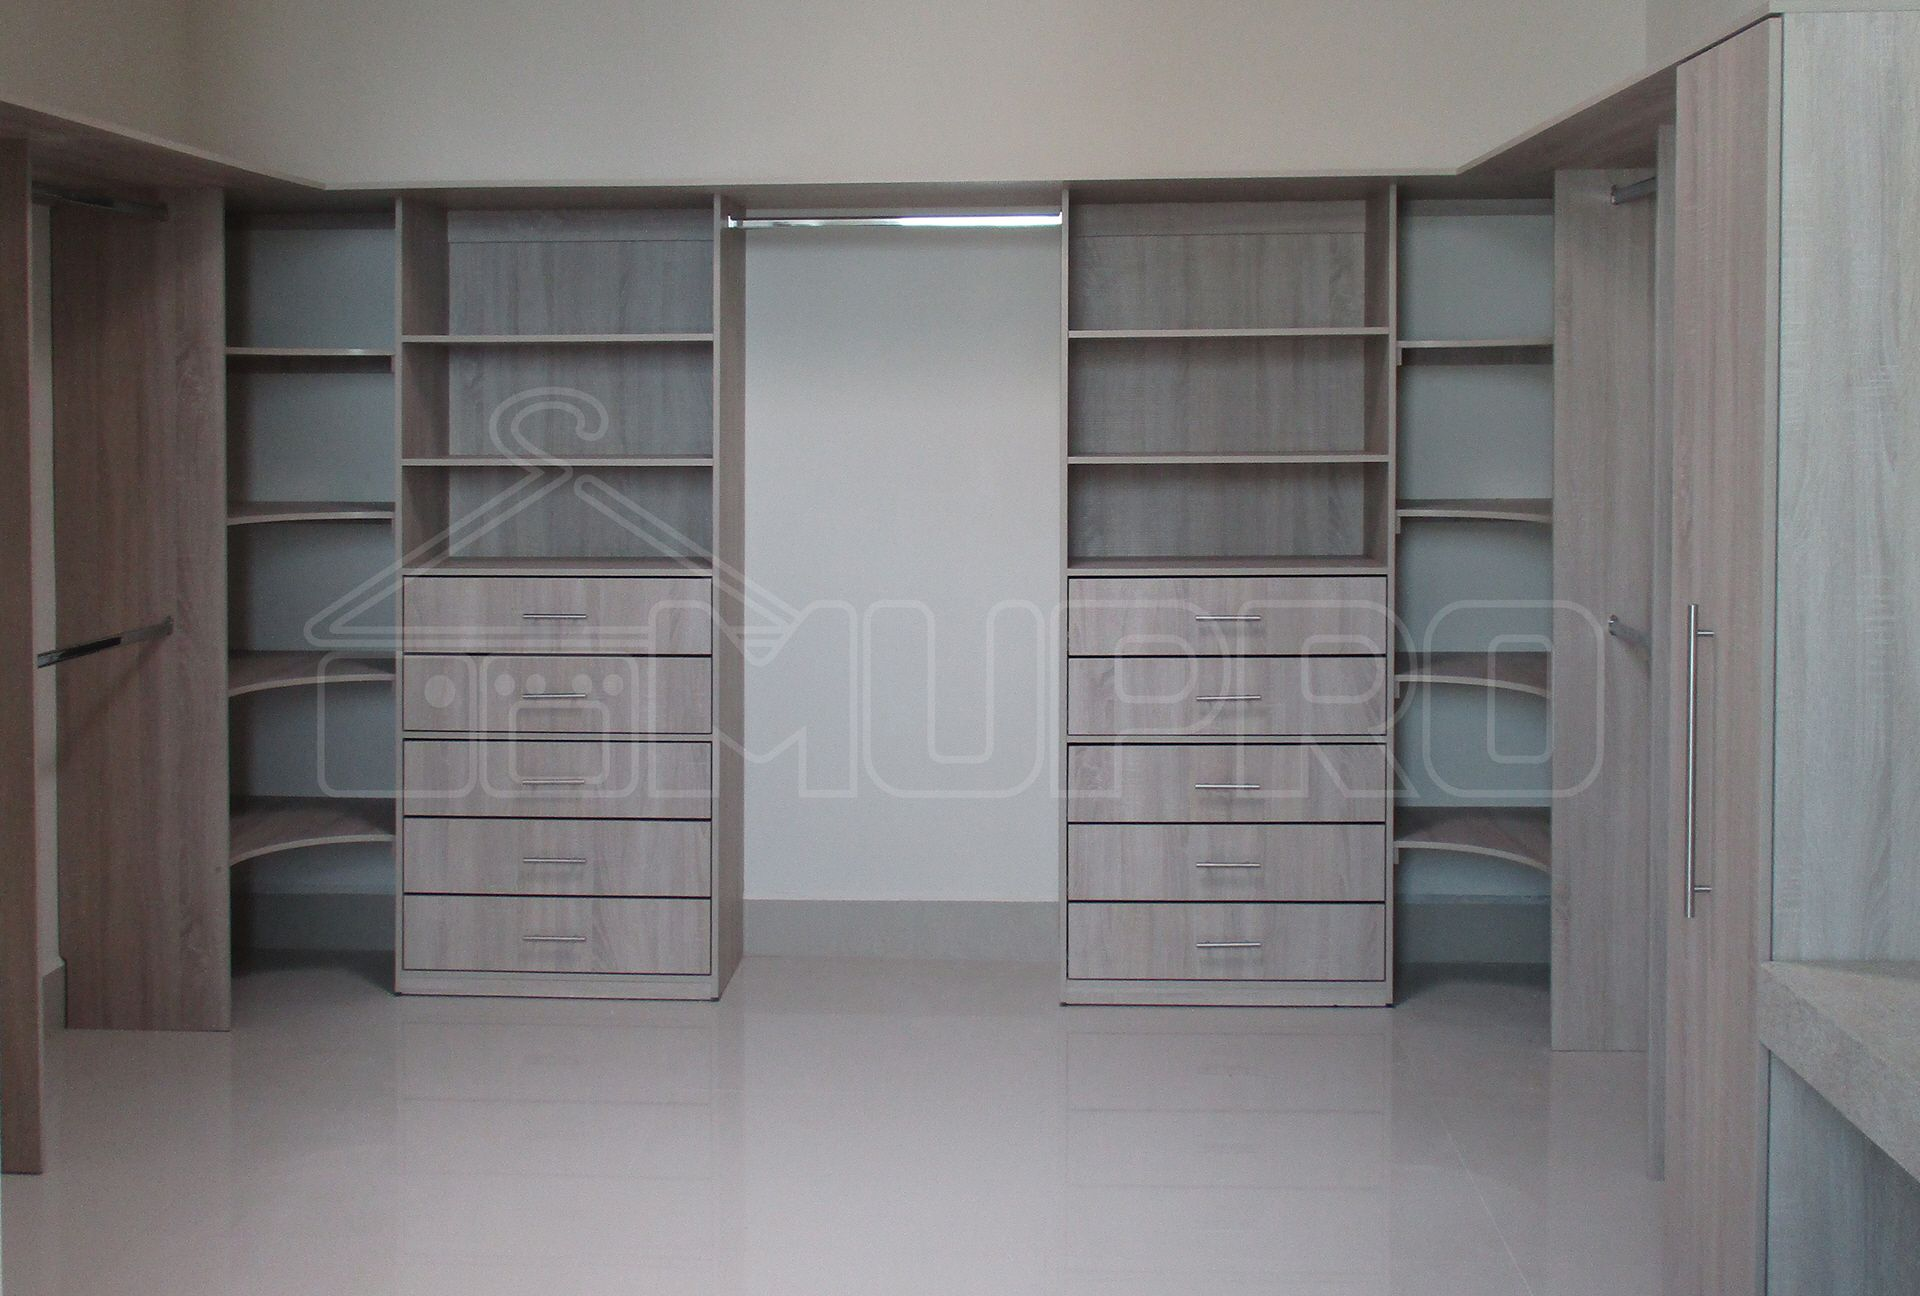 Vestidores (Walk-In Closets)